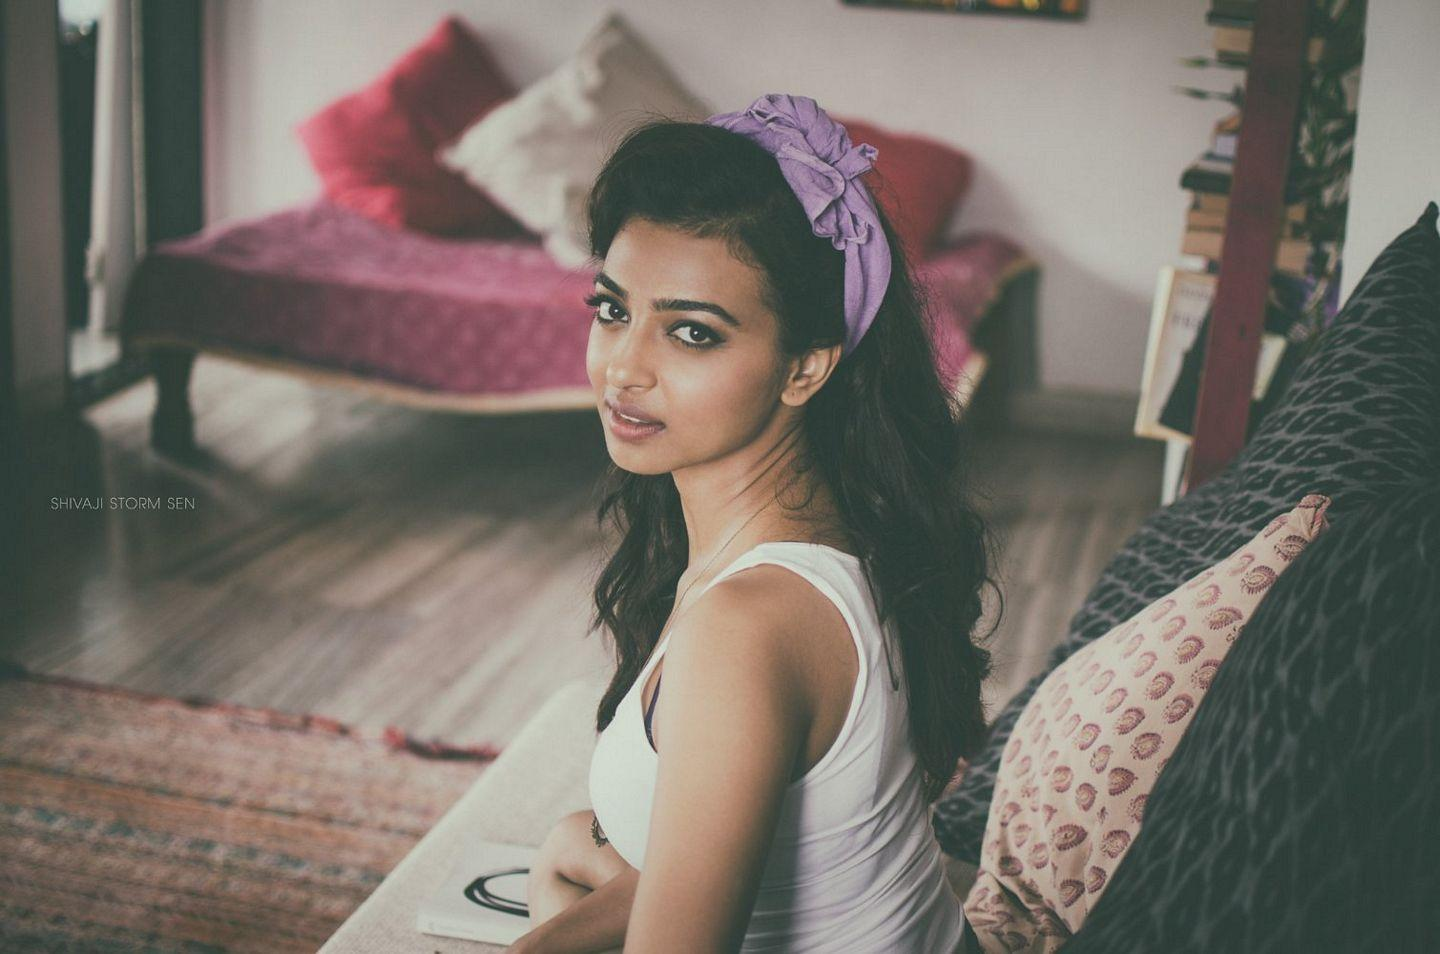 Radhika Apte accepts that she made compromises with producers